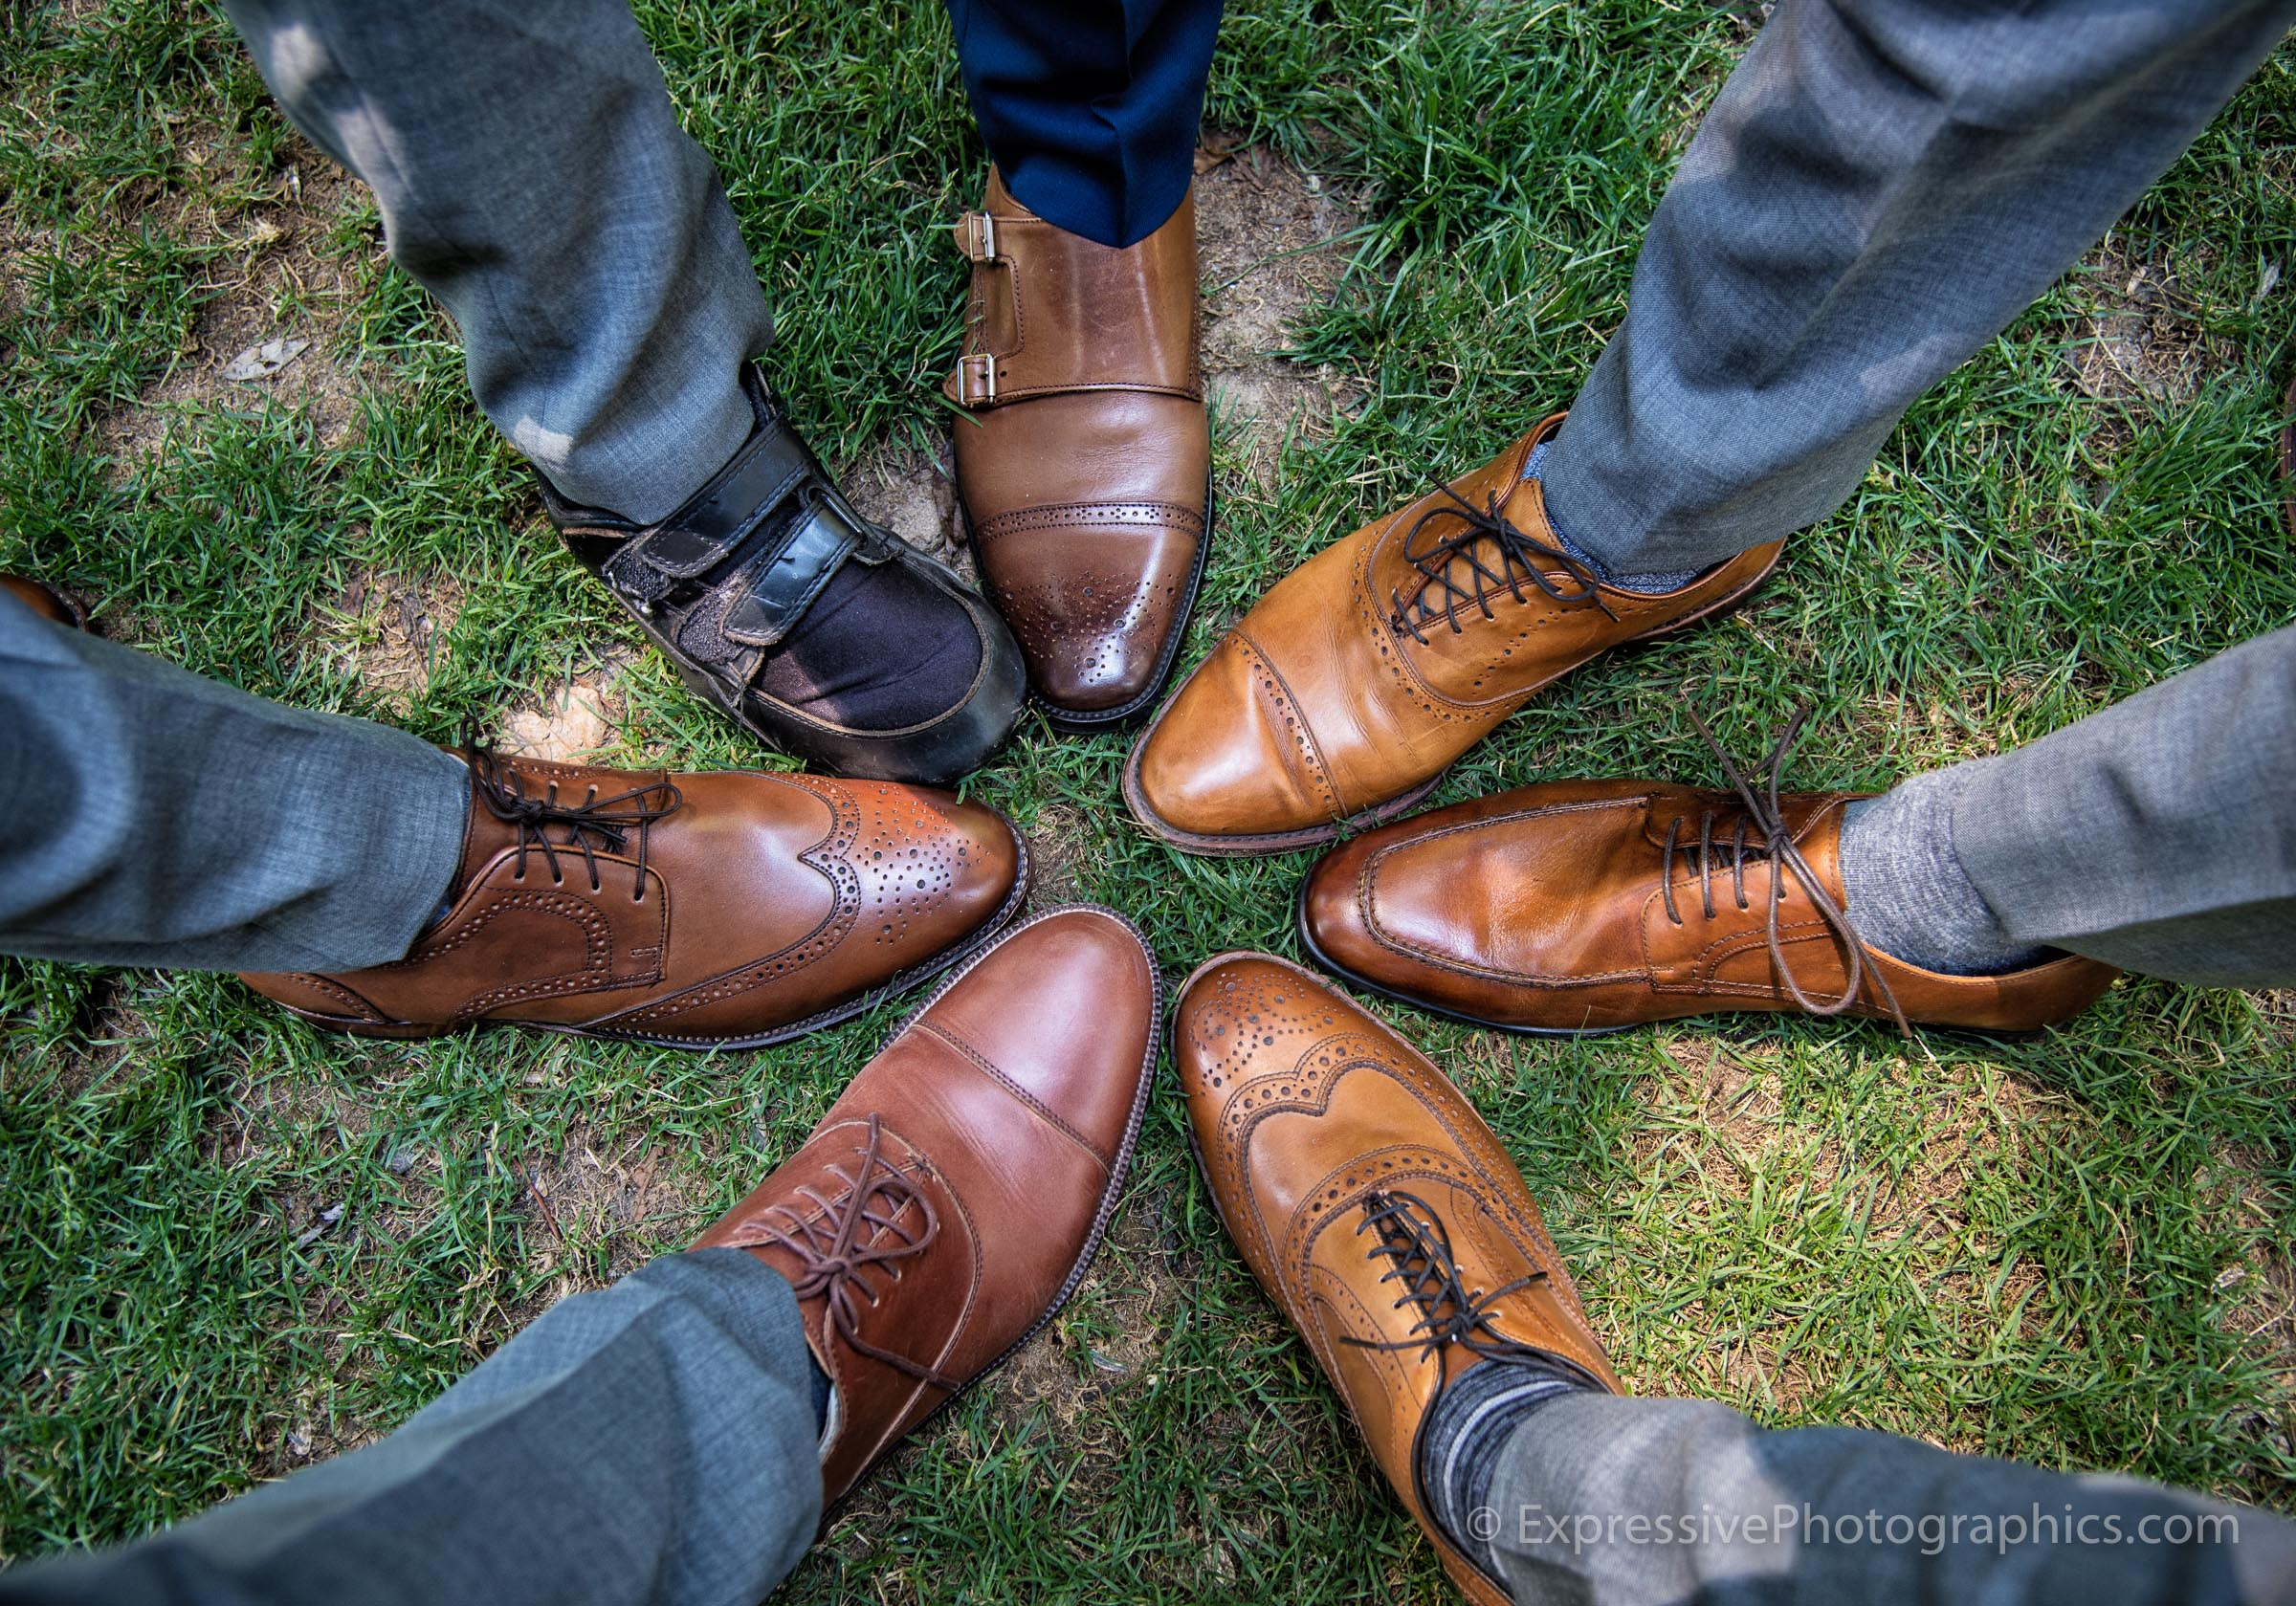 Expressive-Photographics-wedding-groomsmens-shoes-20160723_0046_R.jpg